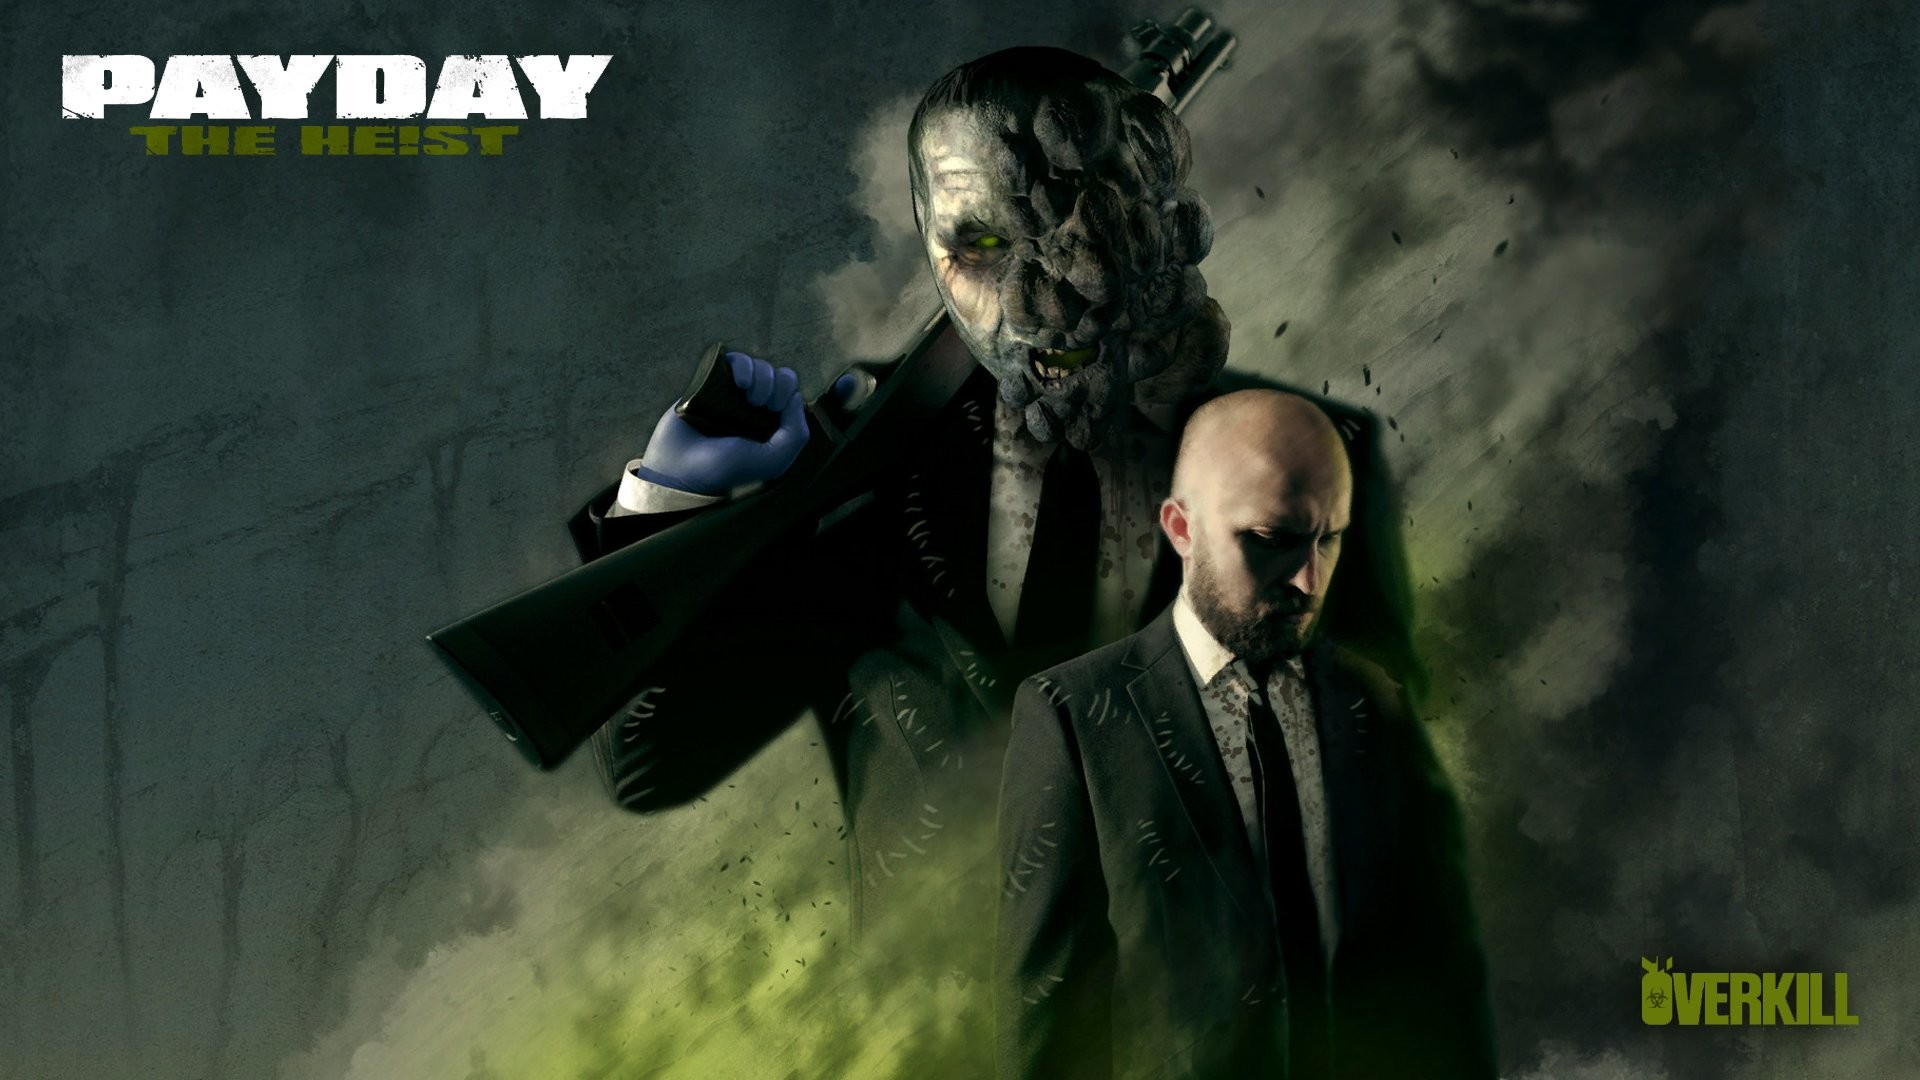 Payday The Heist Wallpapers 81 Images